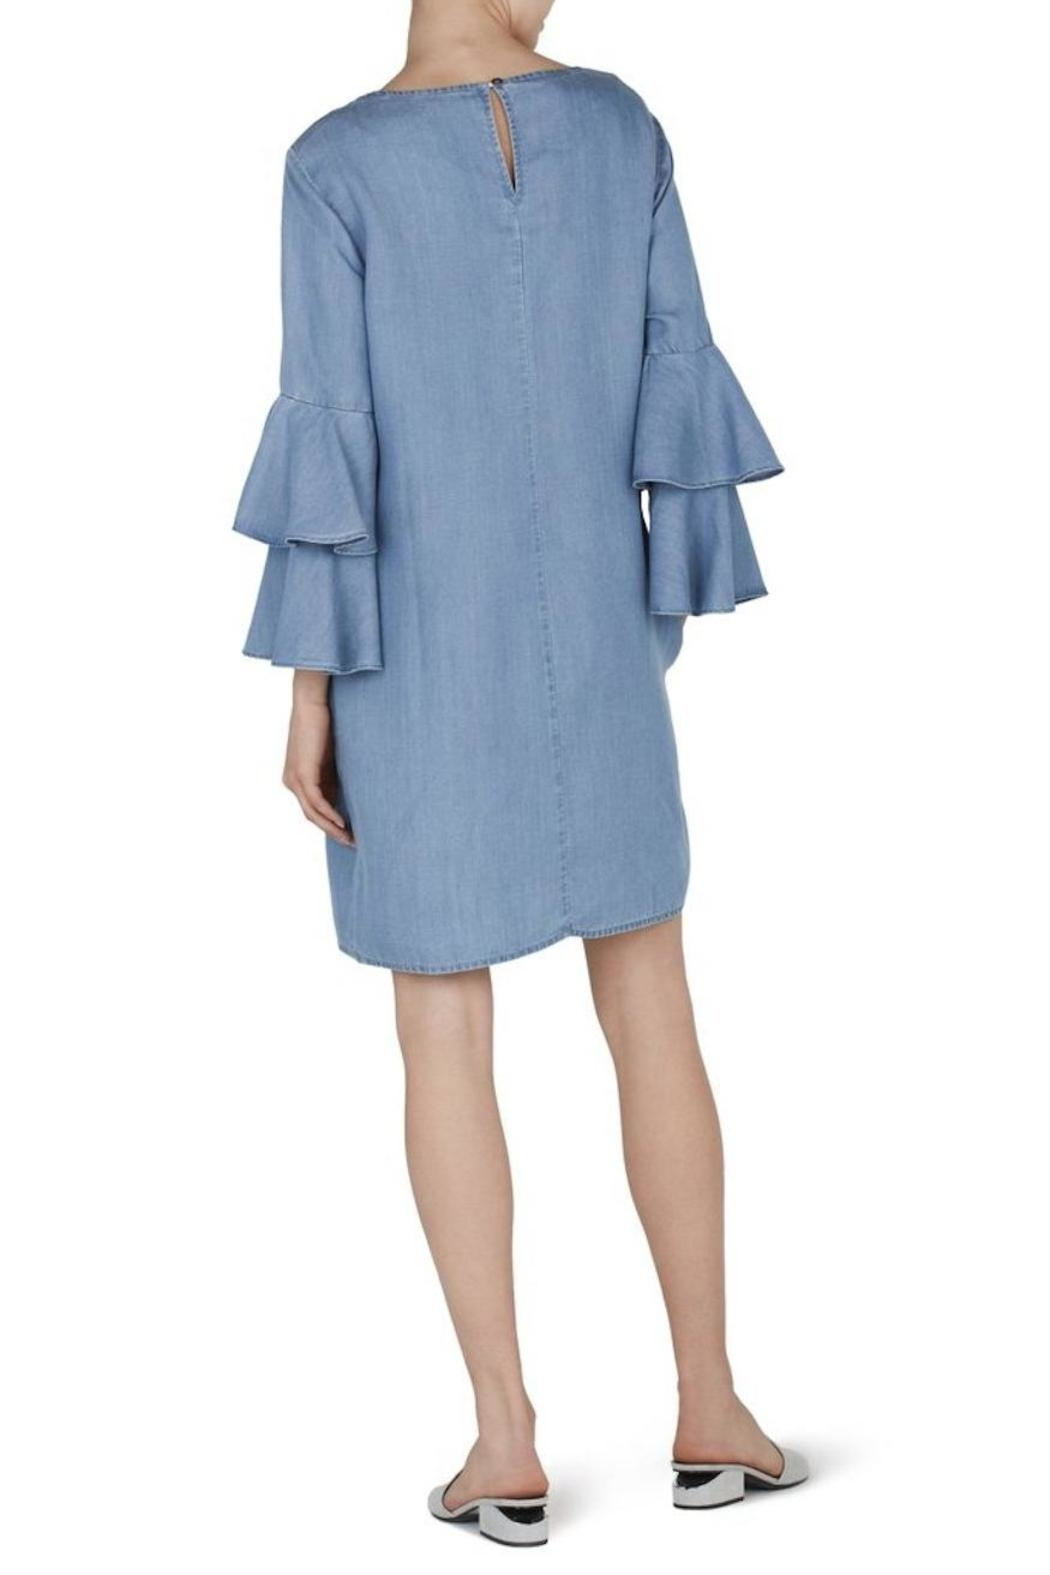 Beach Lunch Lounge Ruffle Sleeve Dress - Front Full Image